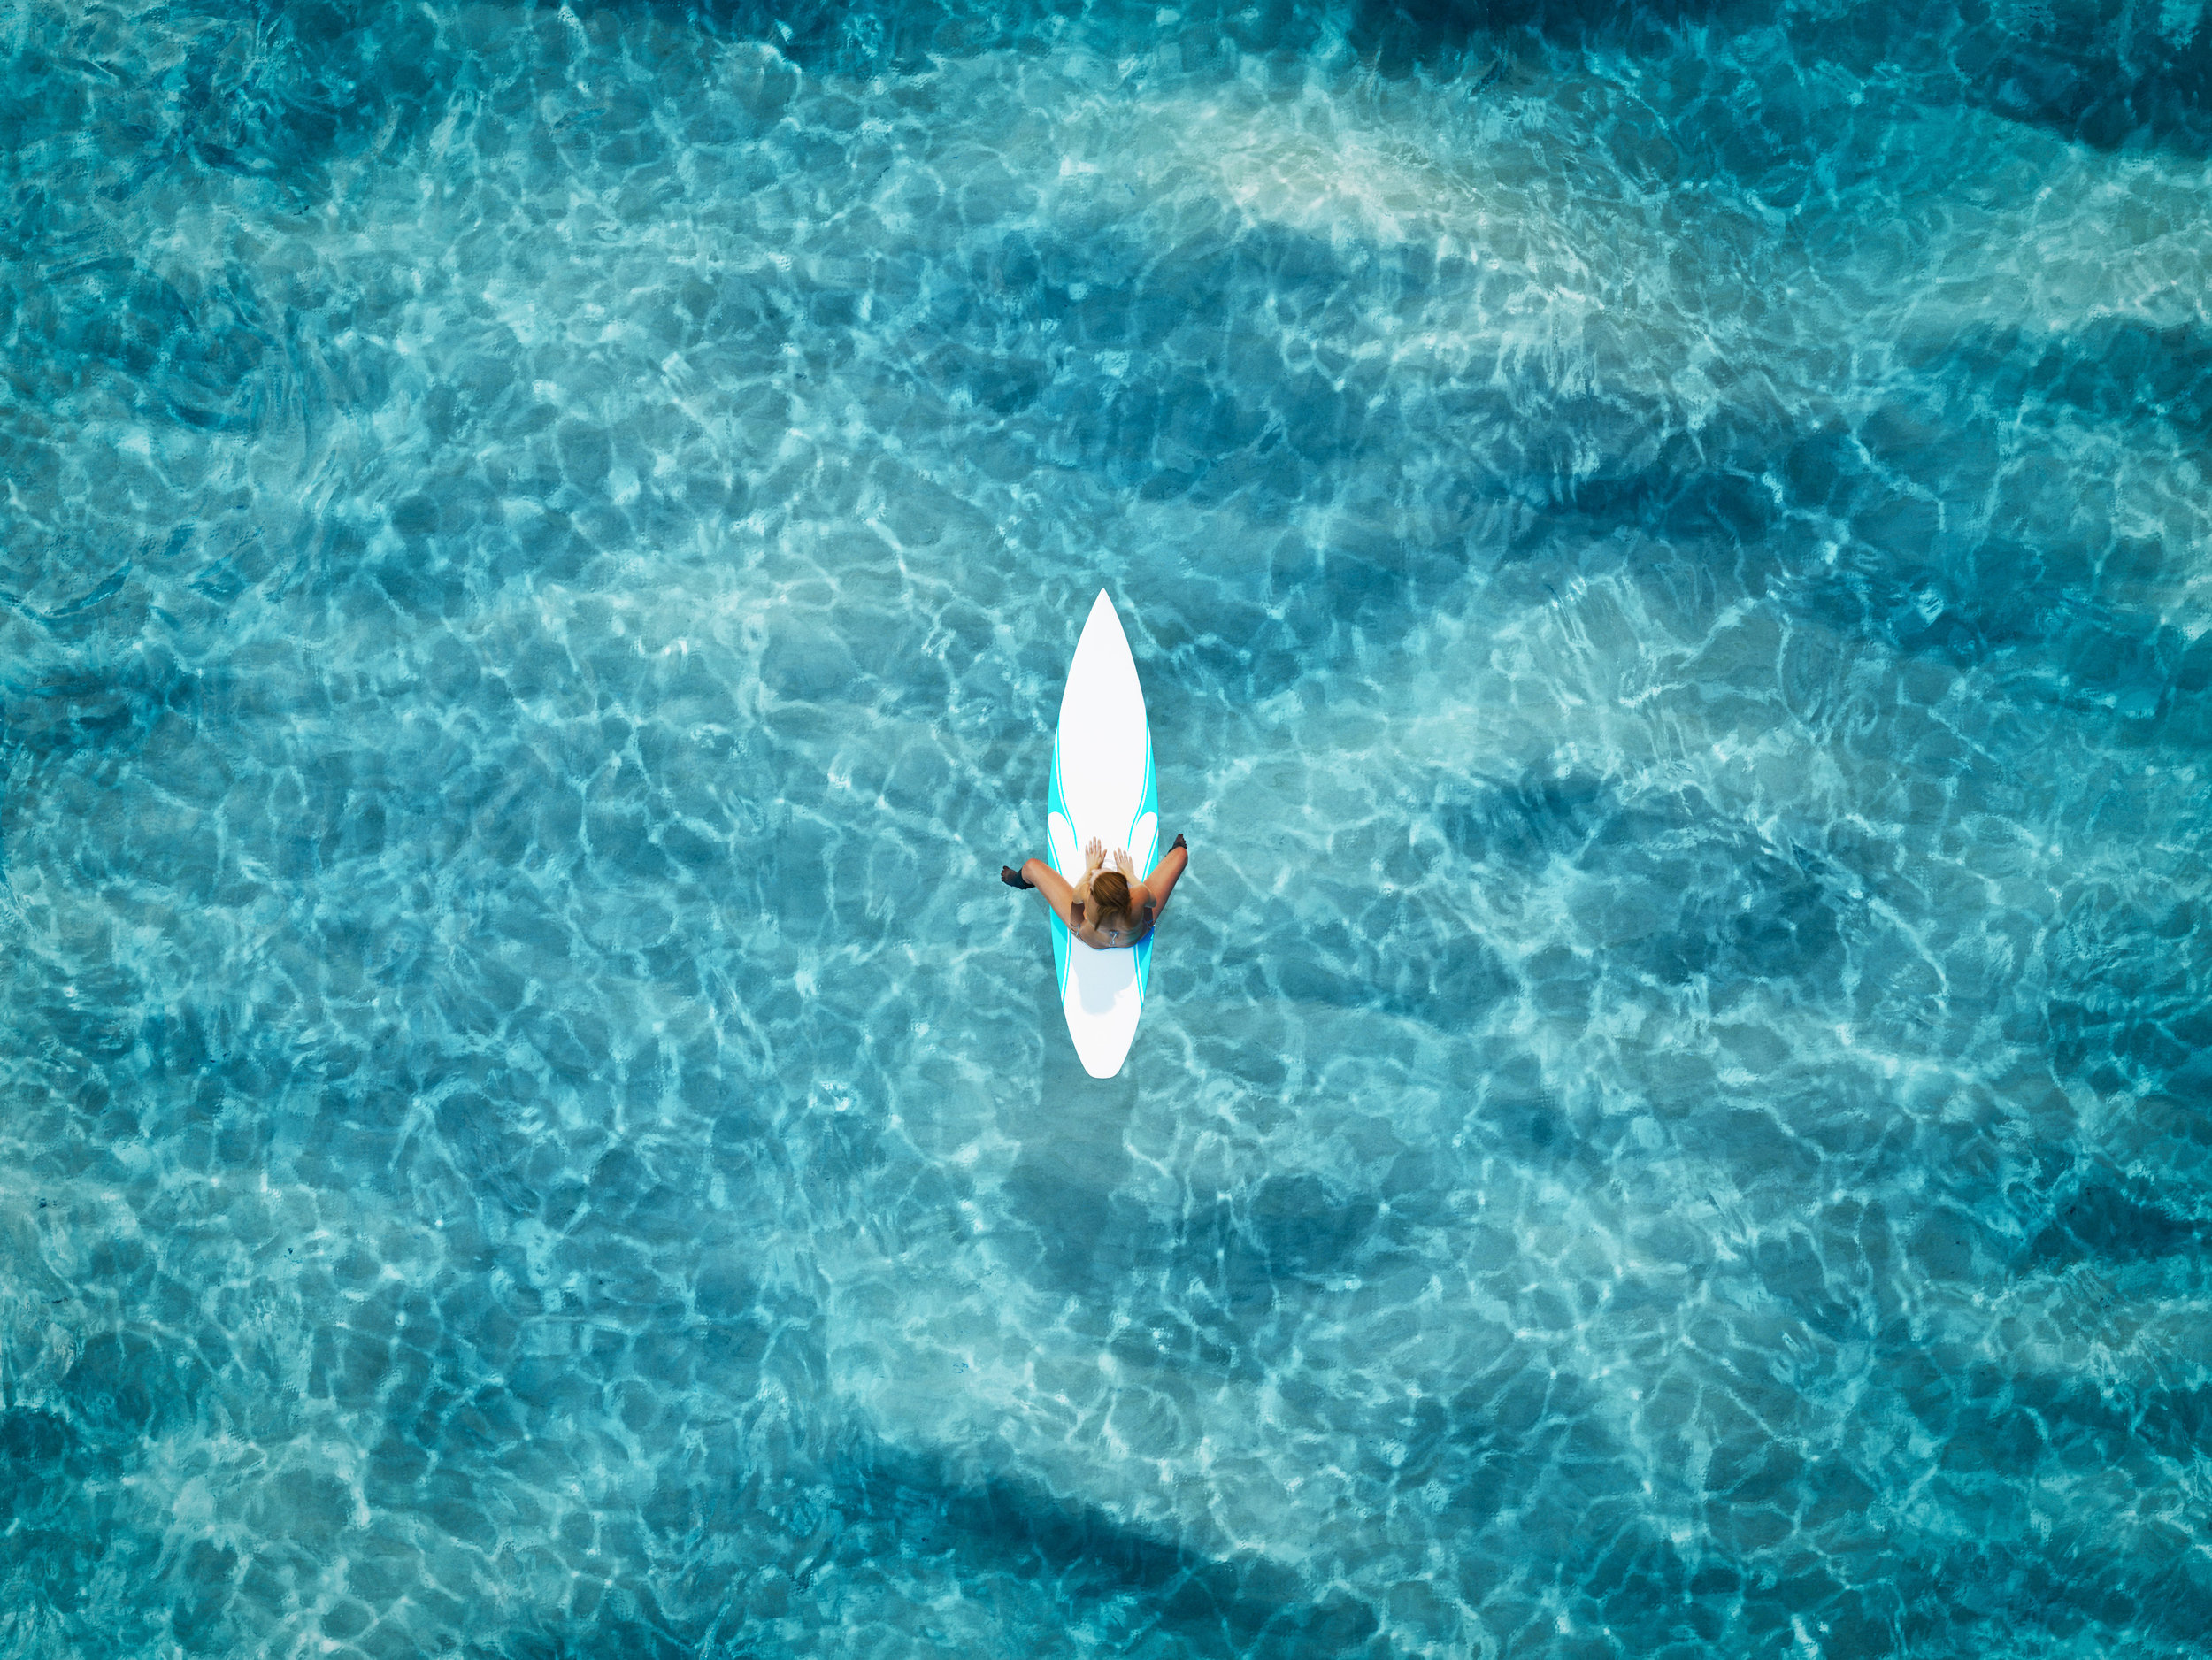 Aerial Photography - Ocean Patrice